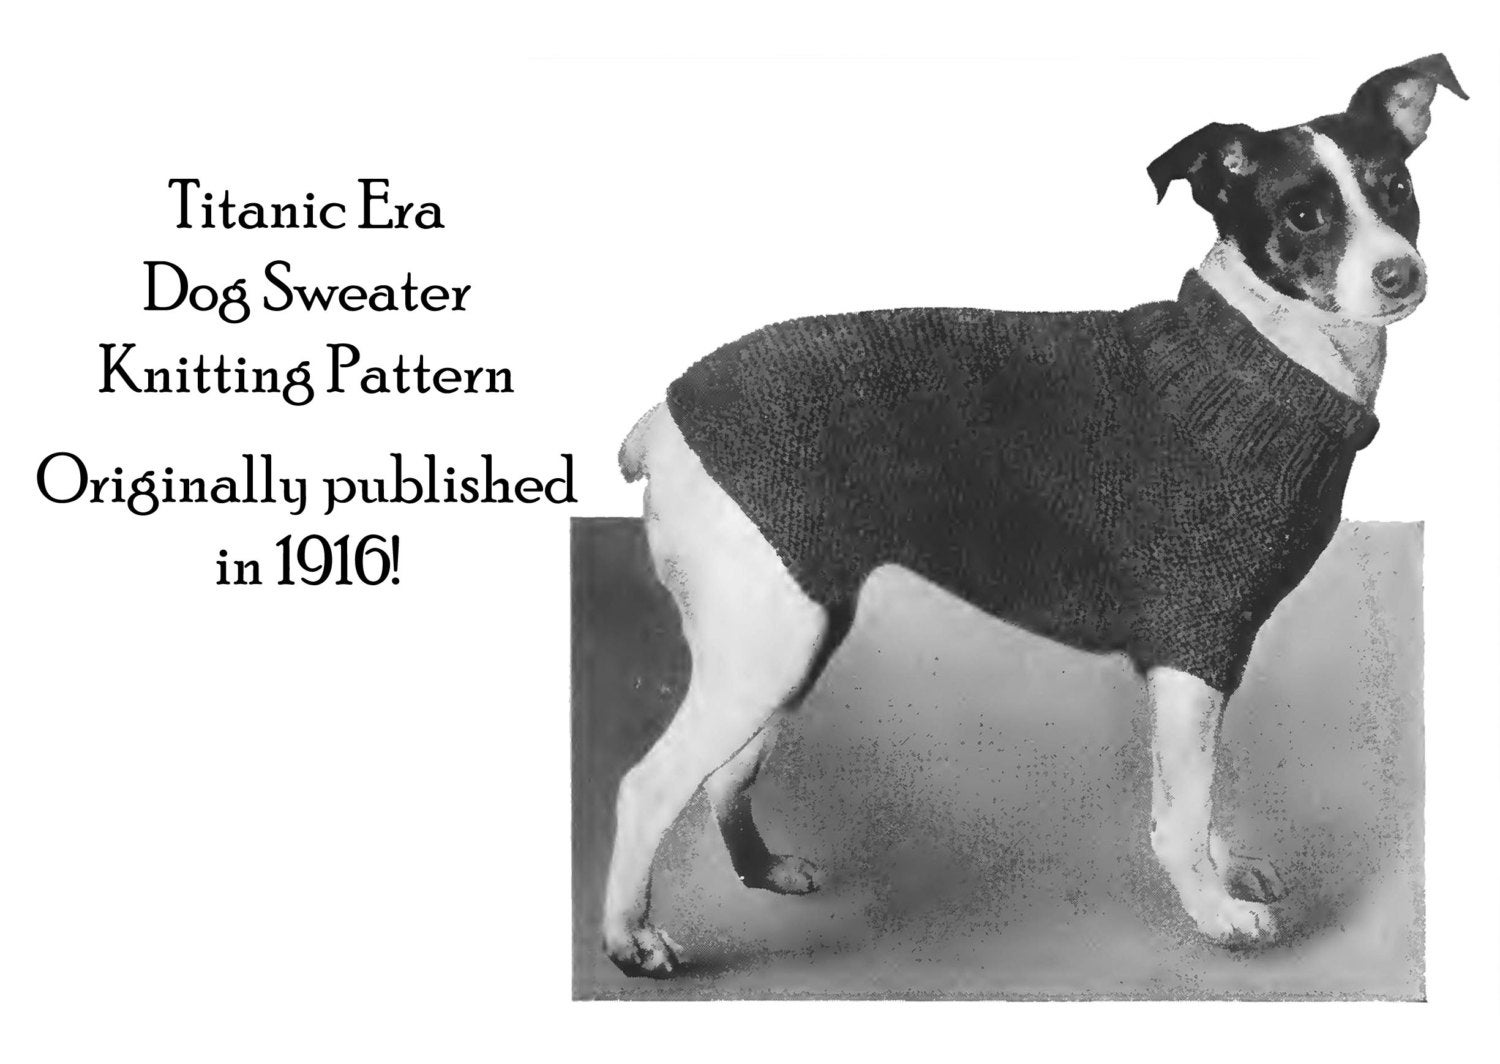 Knitting Pattern For Jack Russell Dog : 1916 Dog Sweater Knitting Pattern Titanic Era by schmetterlingtag